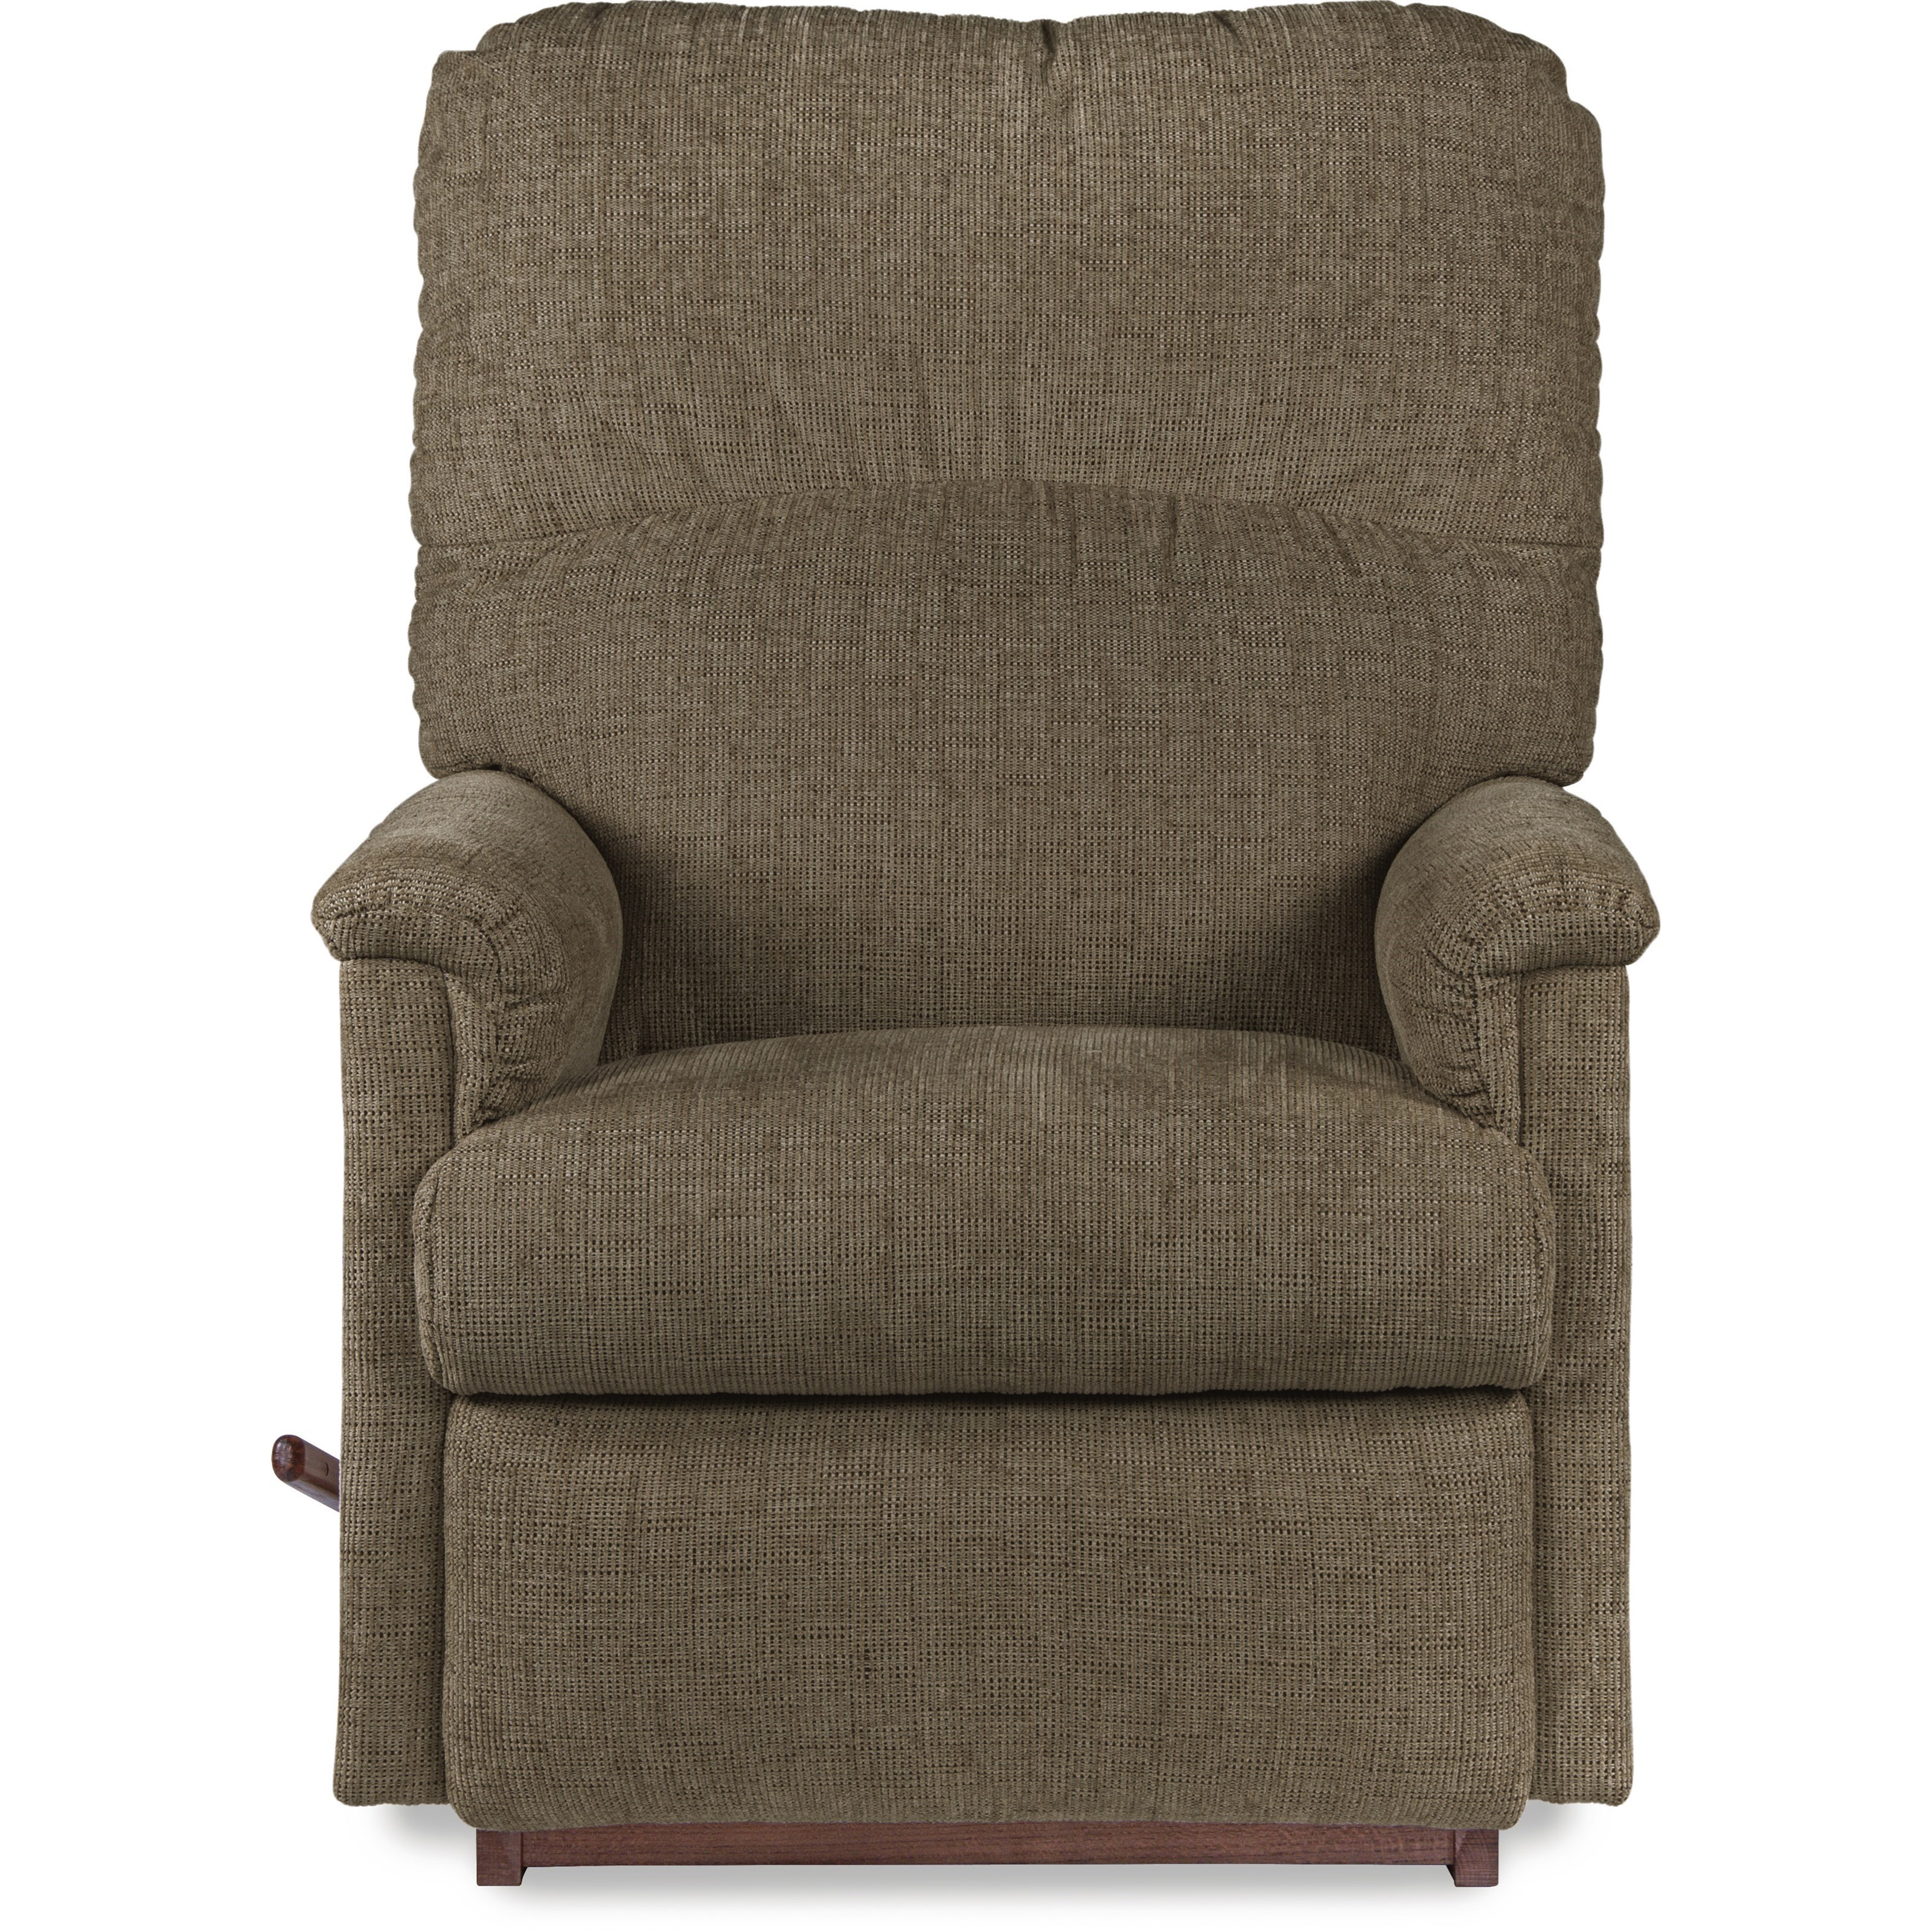 Recliners Collage Wall Recliner by La-Z-Boy at Pedigo Furniture